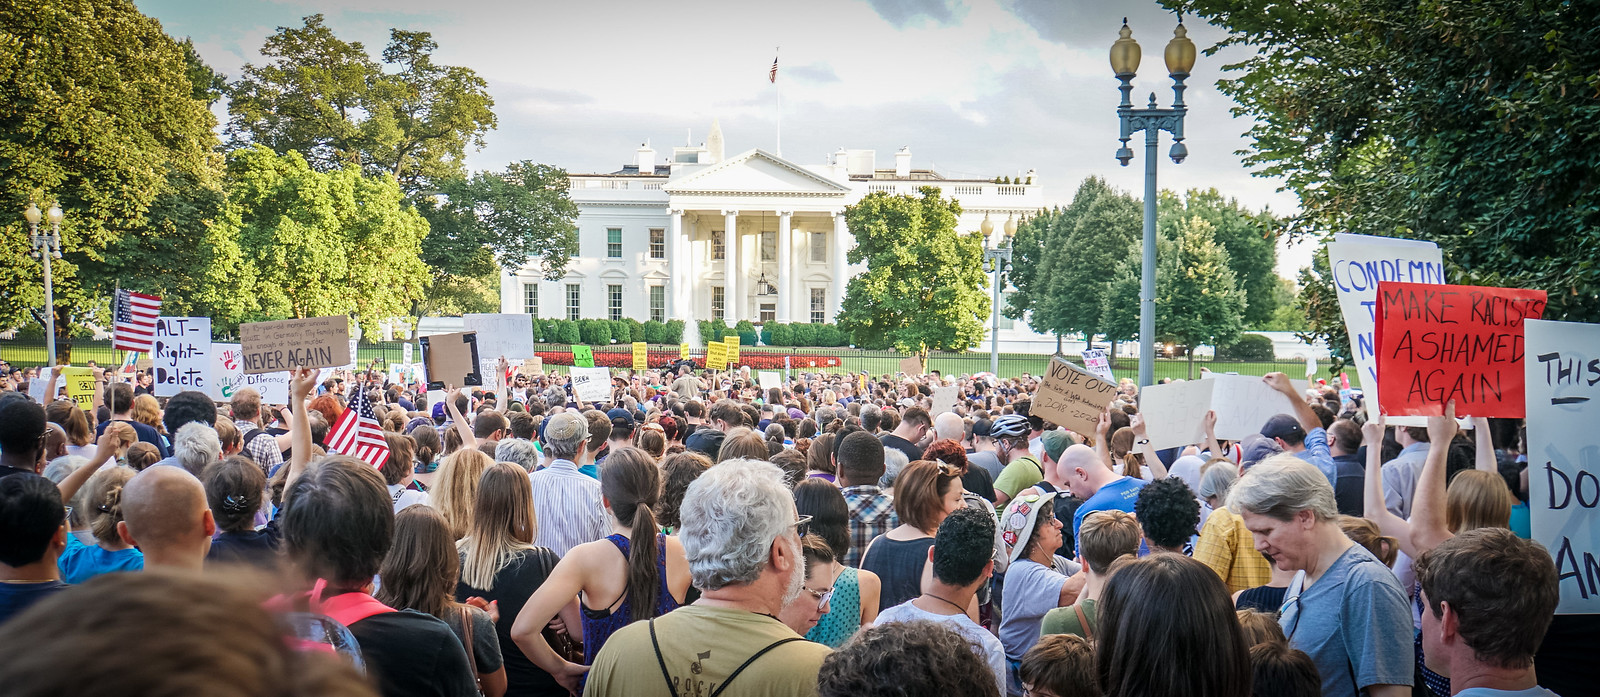 Thanks for publishing my photo, @DCist in Another Protest Planned Tonight Outside The White House